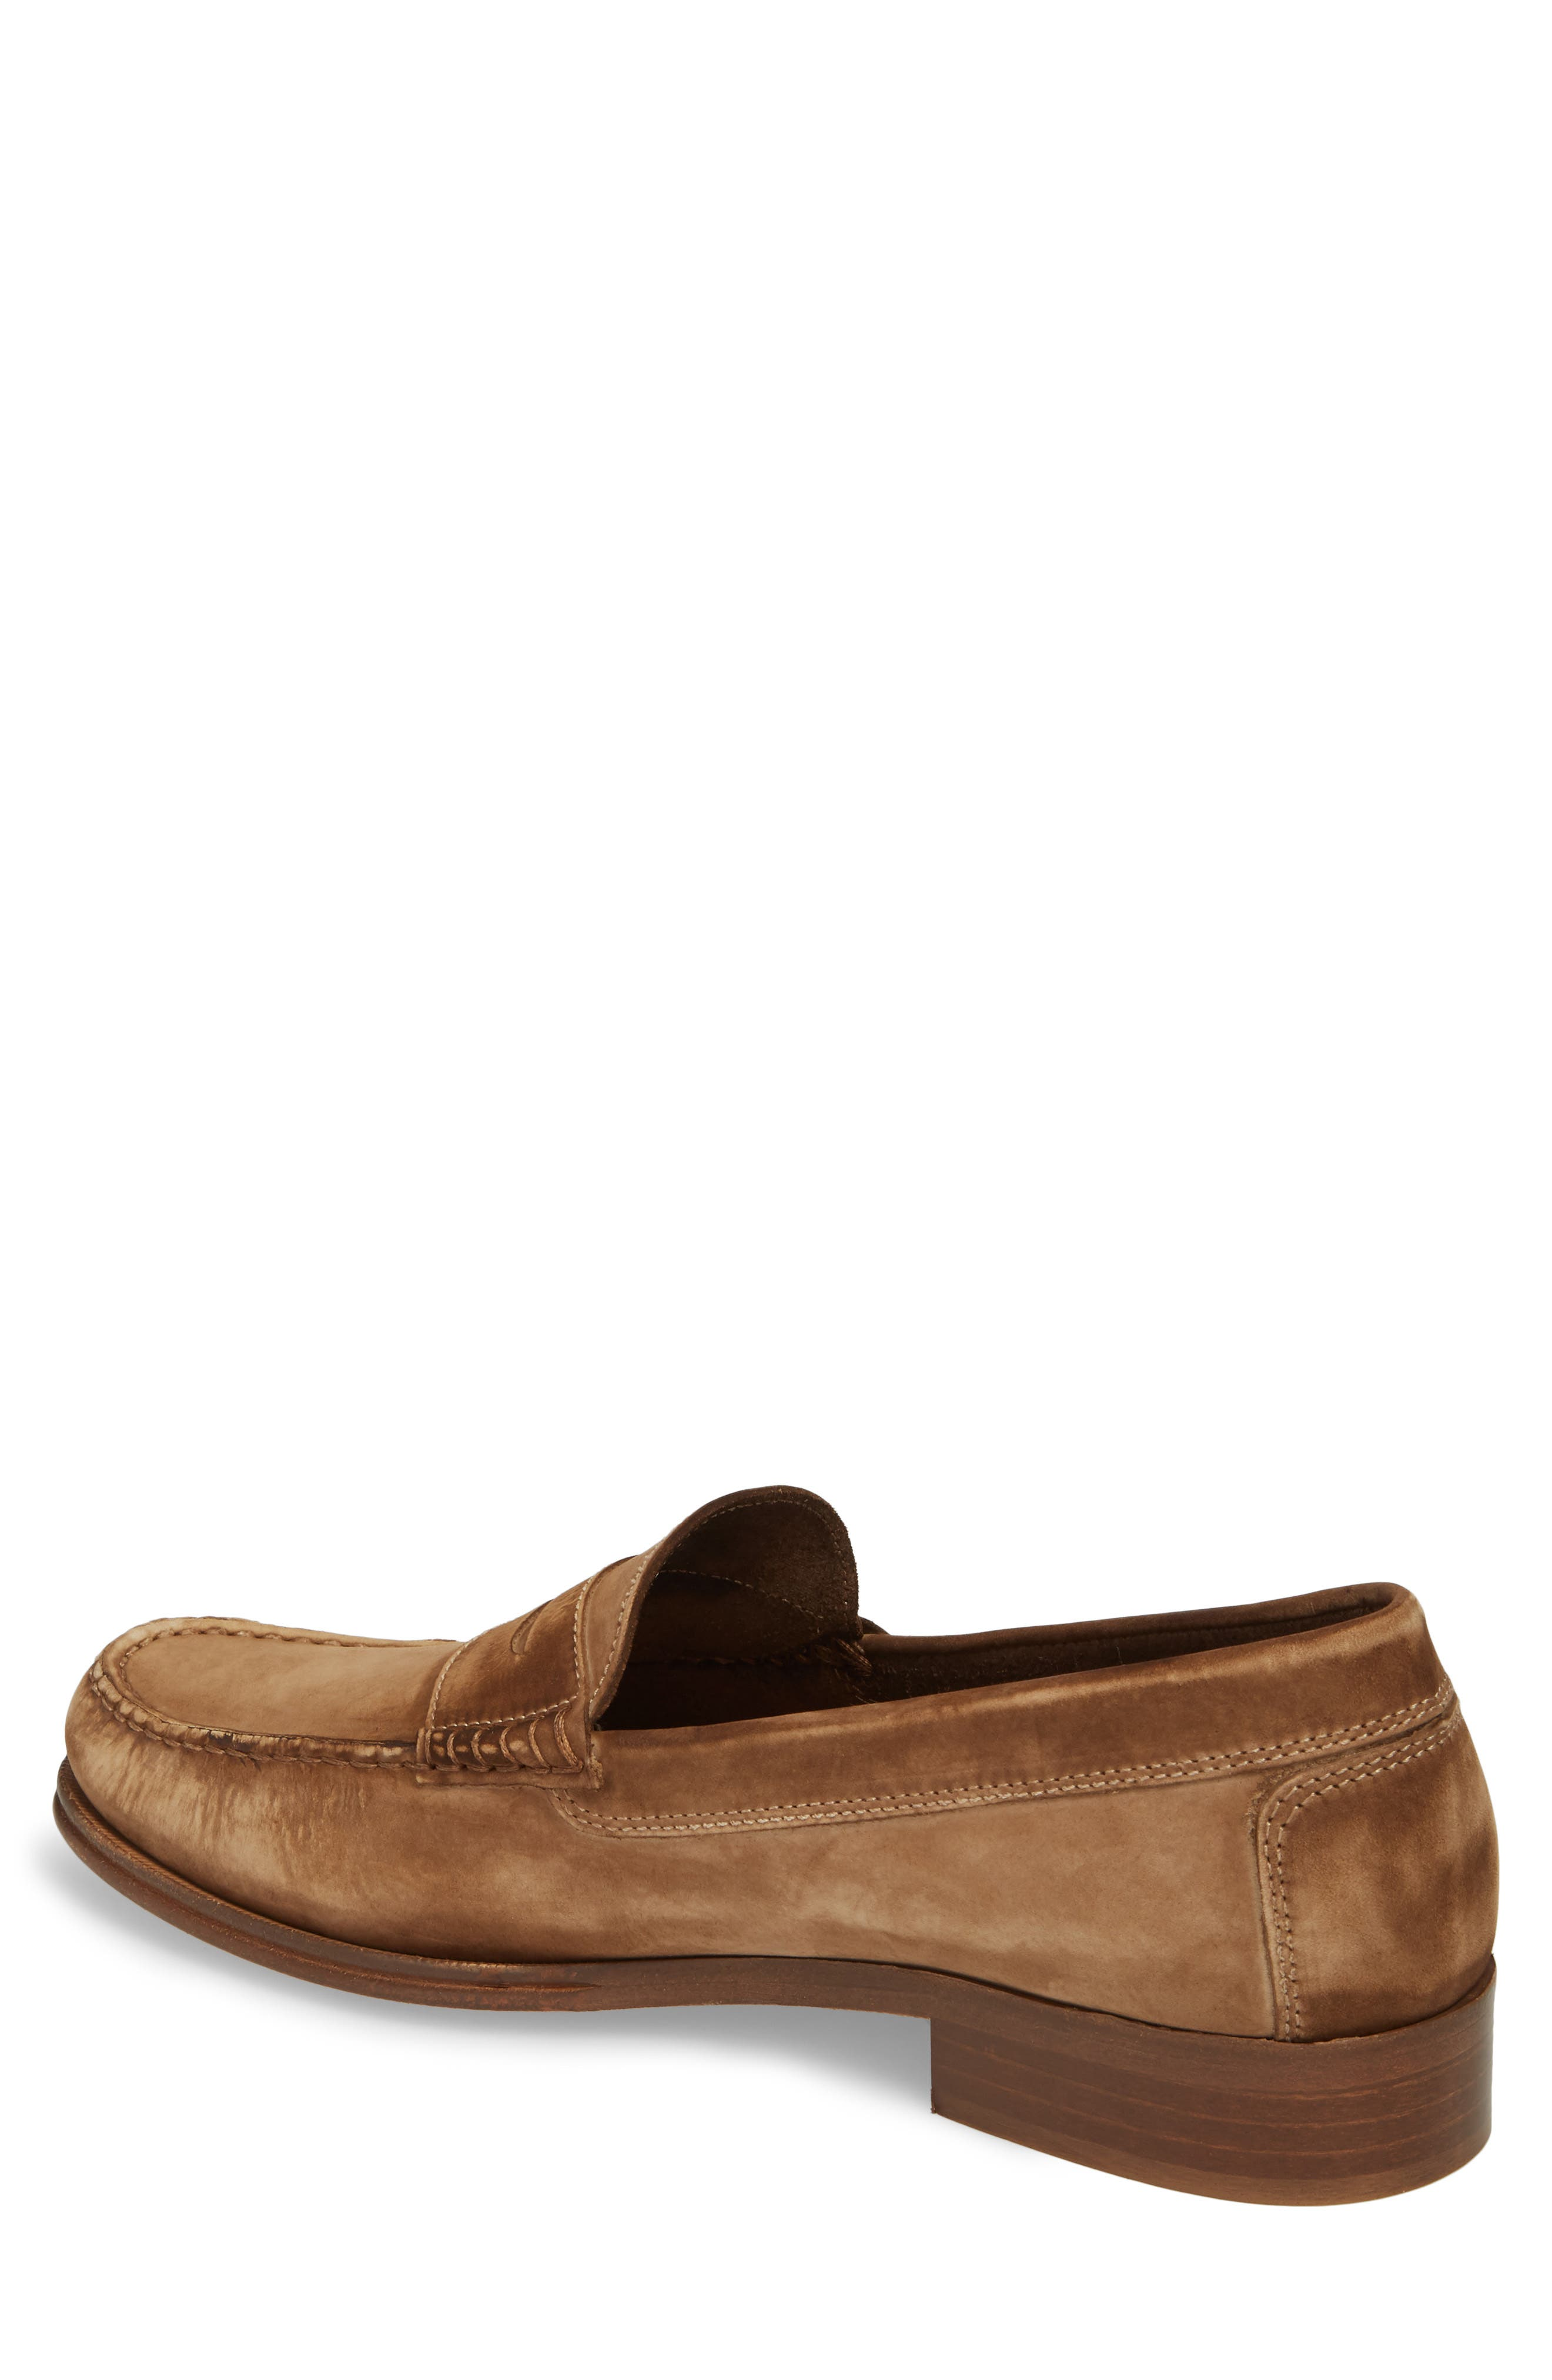 Nicola Penny Loafer,                             Alternate thumbnail 2, color,                             205